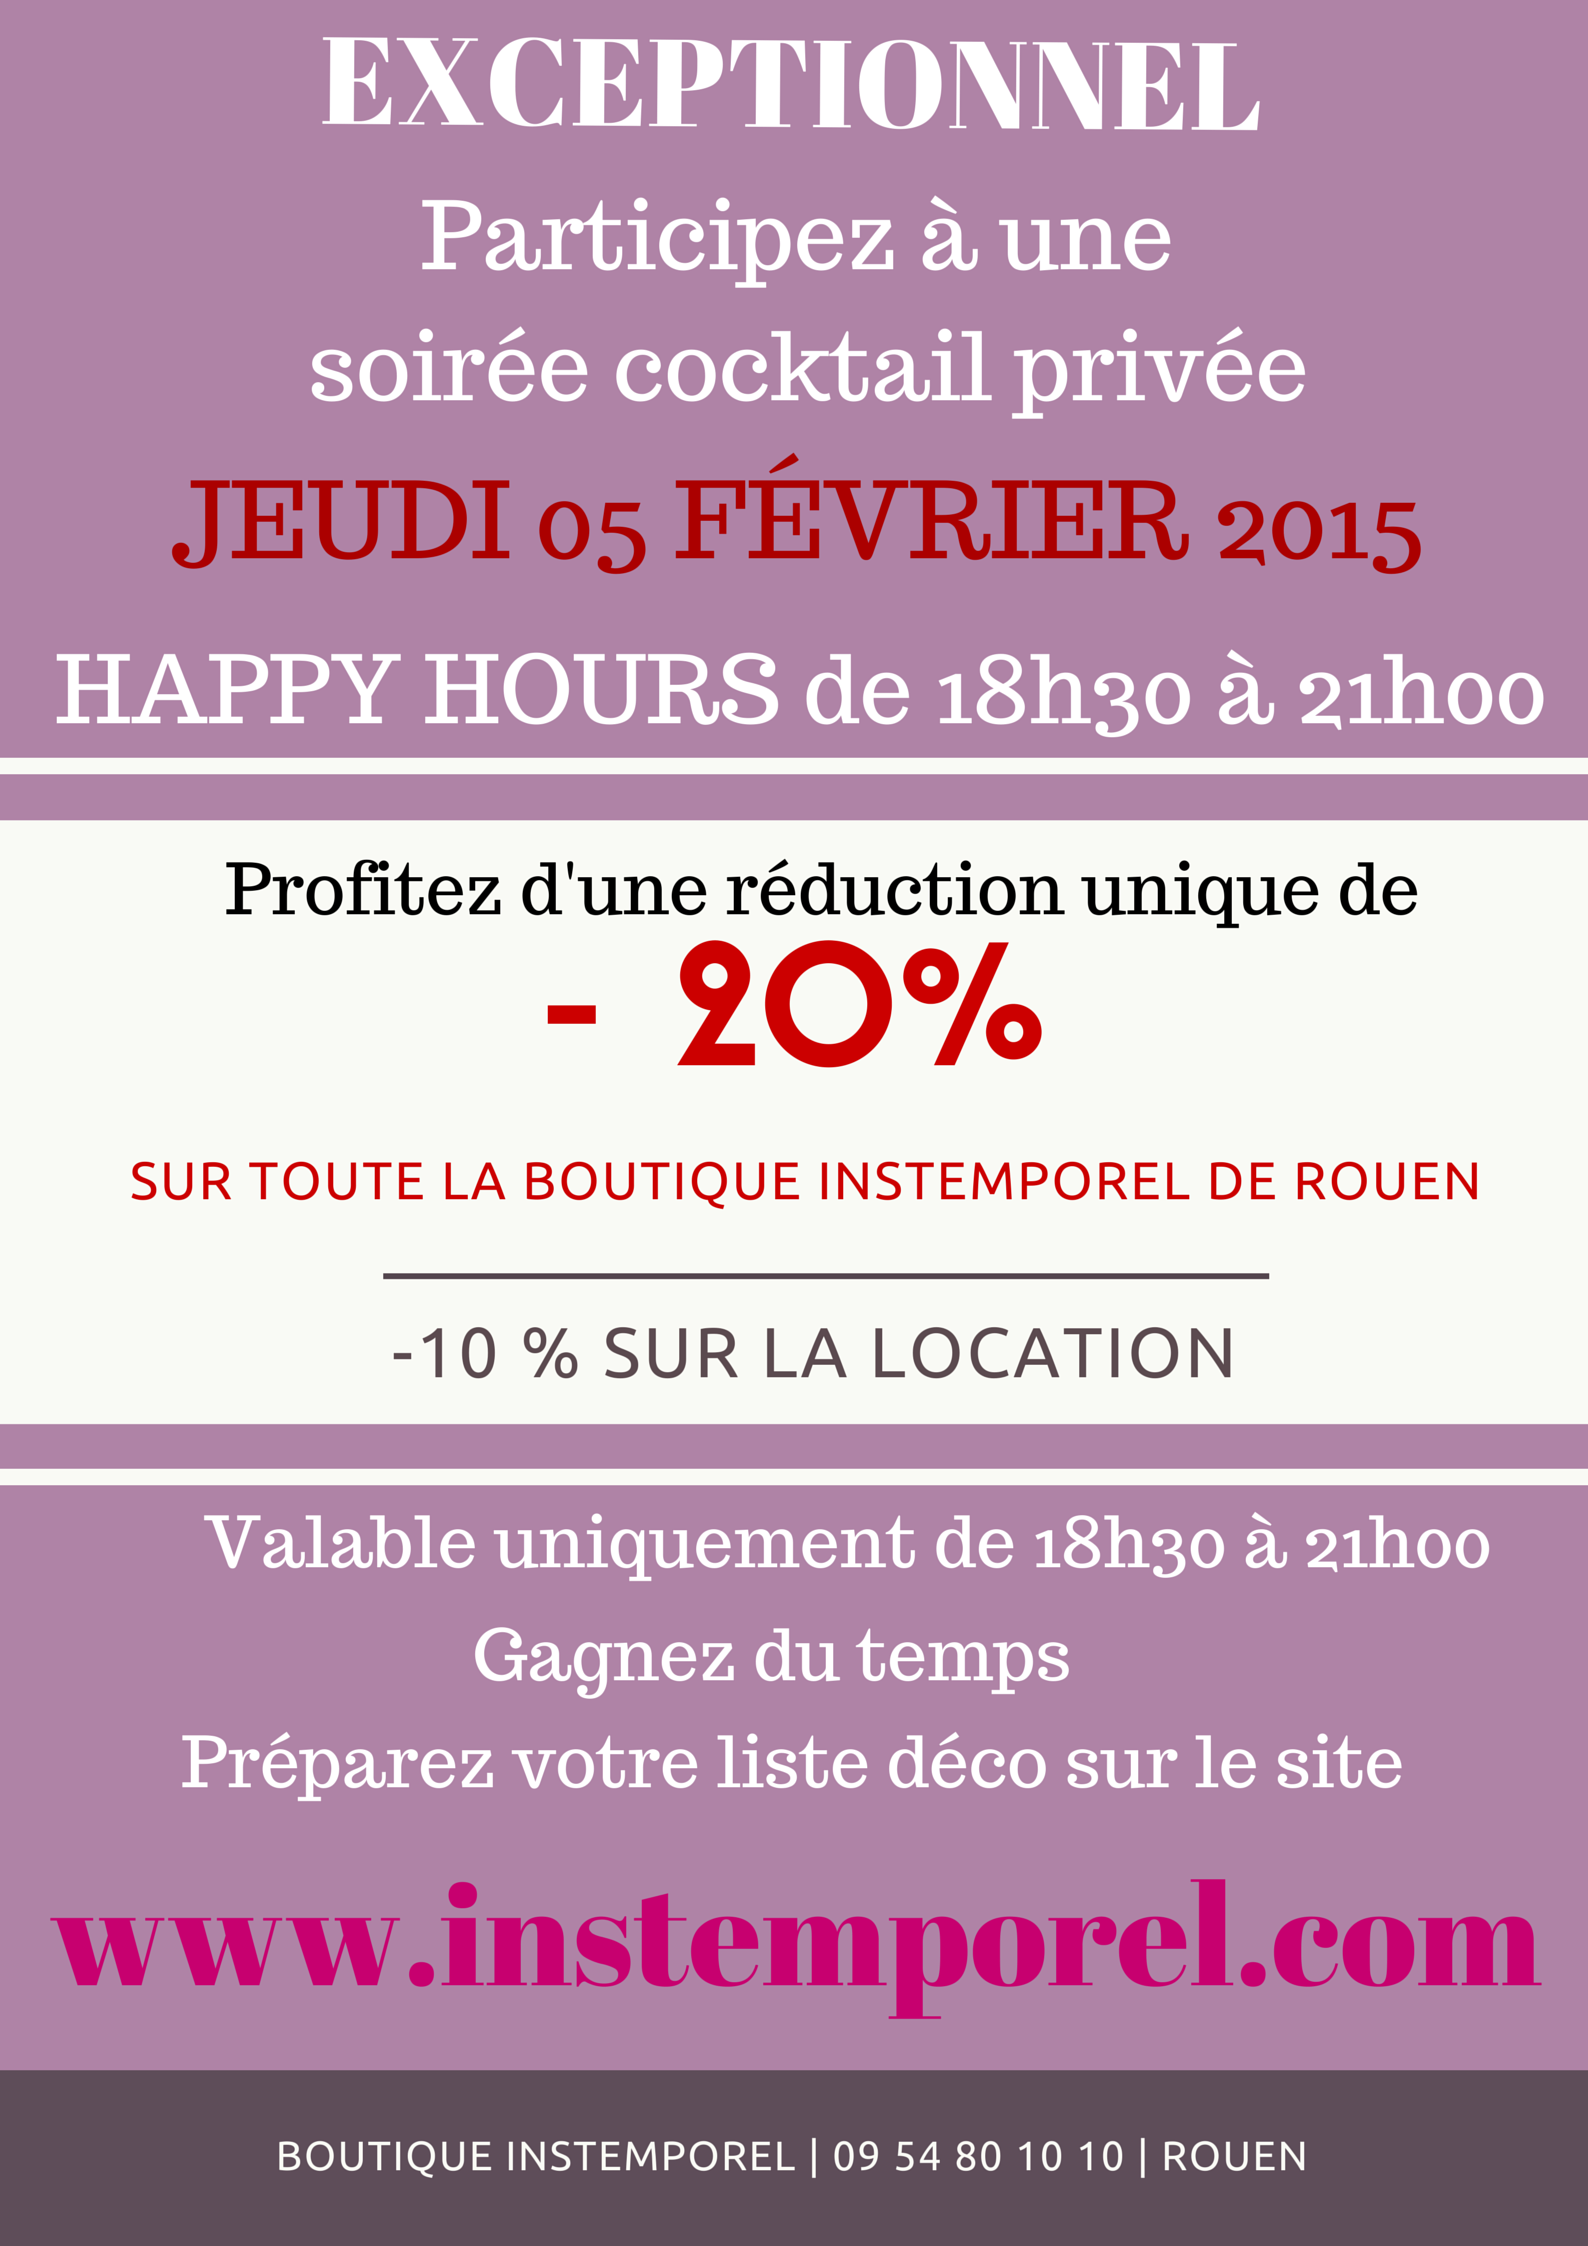 soir e cocktail priv e instemporel happy hours 20 sur toute la boutique de rouen billets. Black Bedroom Furniture Sets. Home Design Ideas